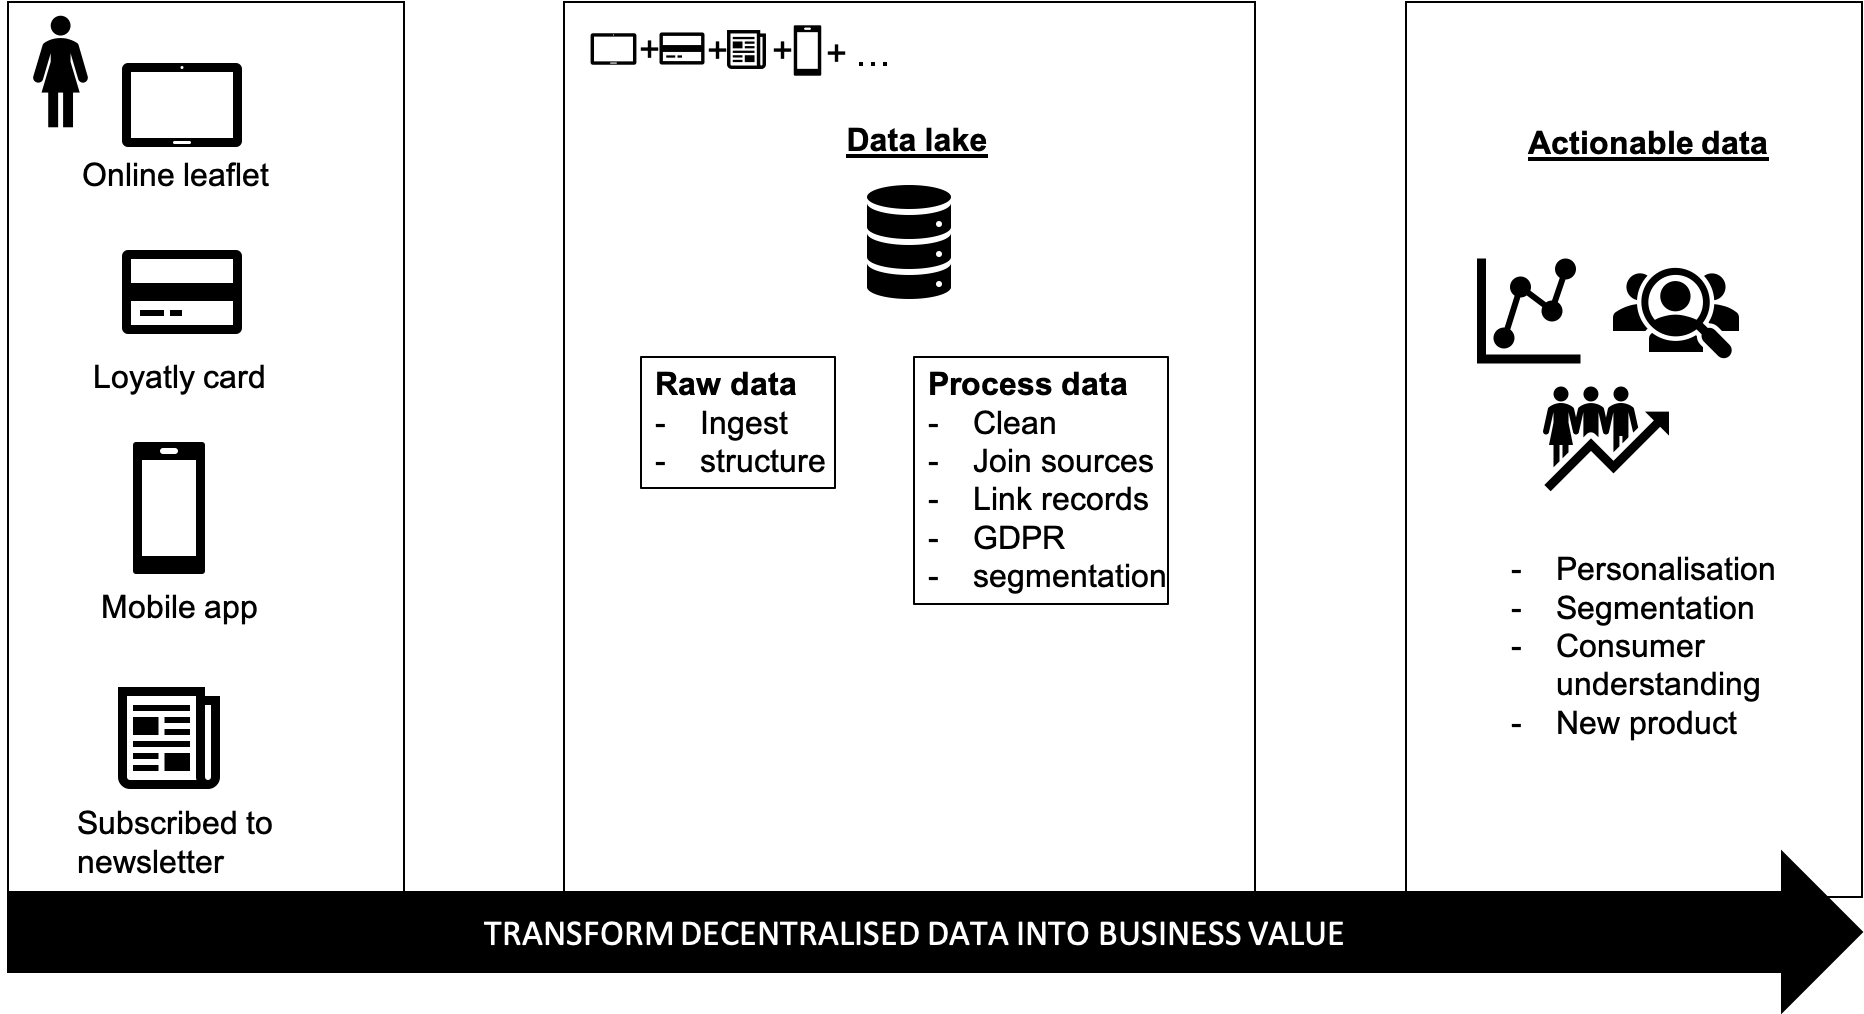 Finally, our client is enabled to deliver value to their B2B and B2C customers thanks to data insights.